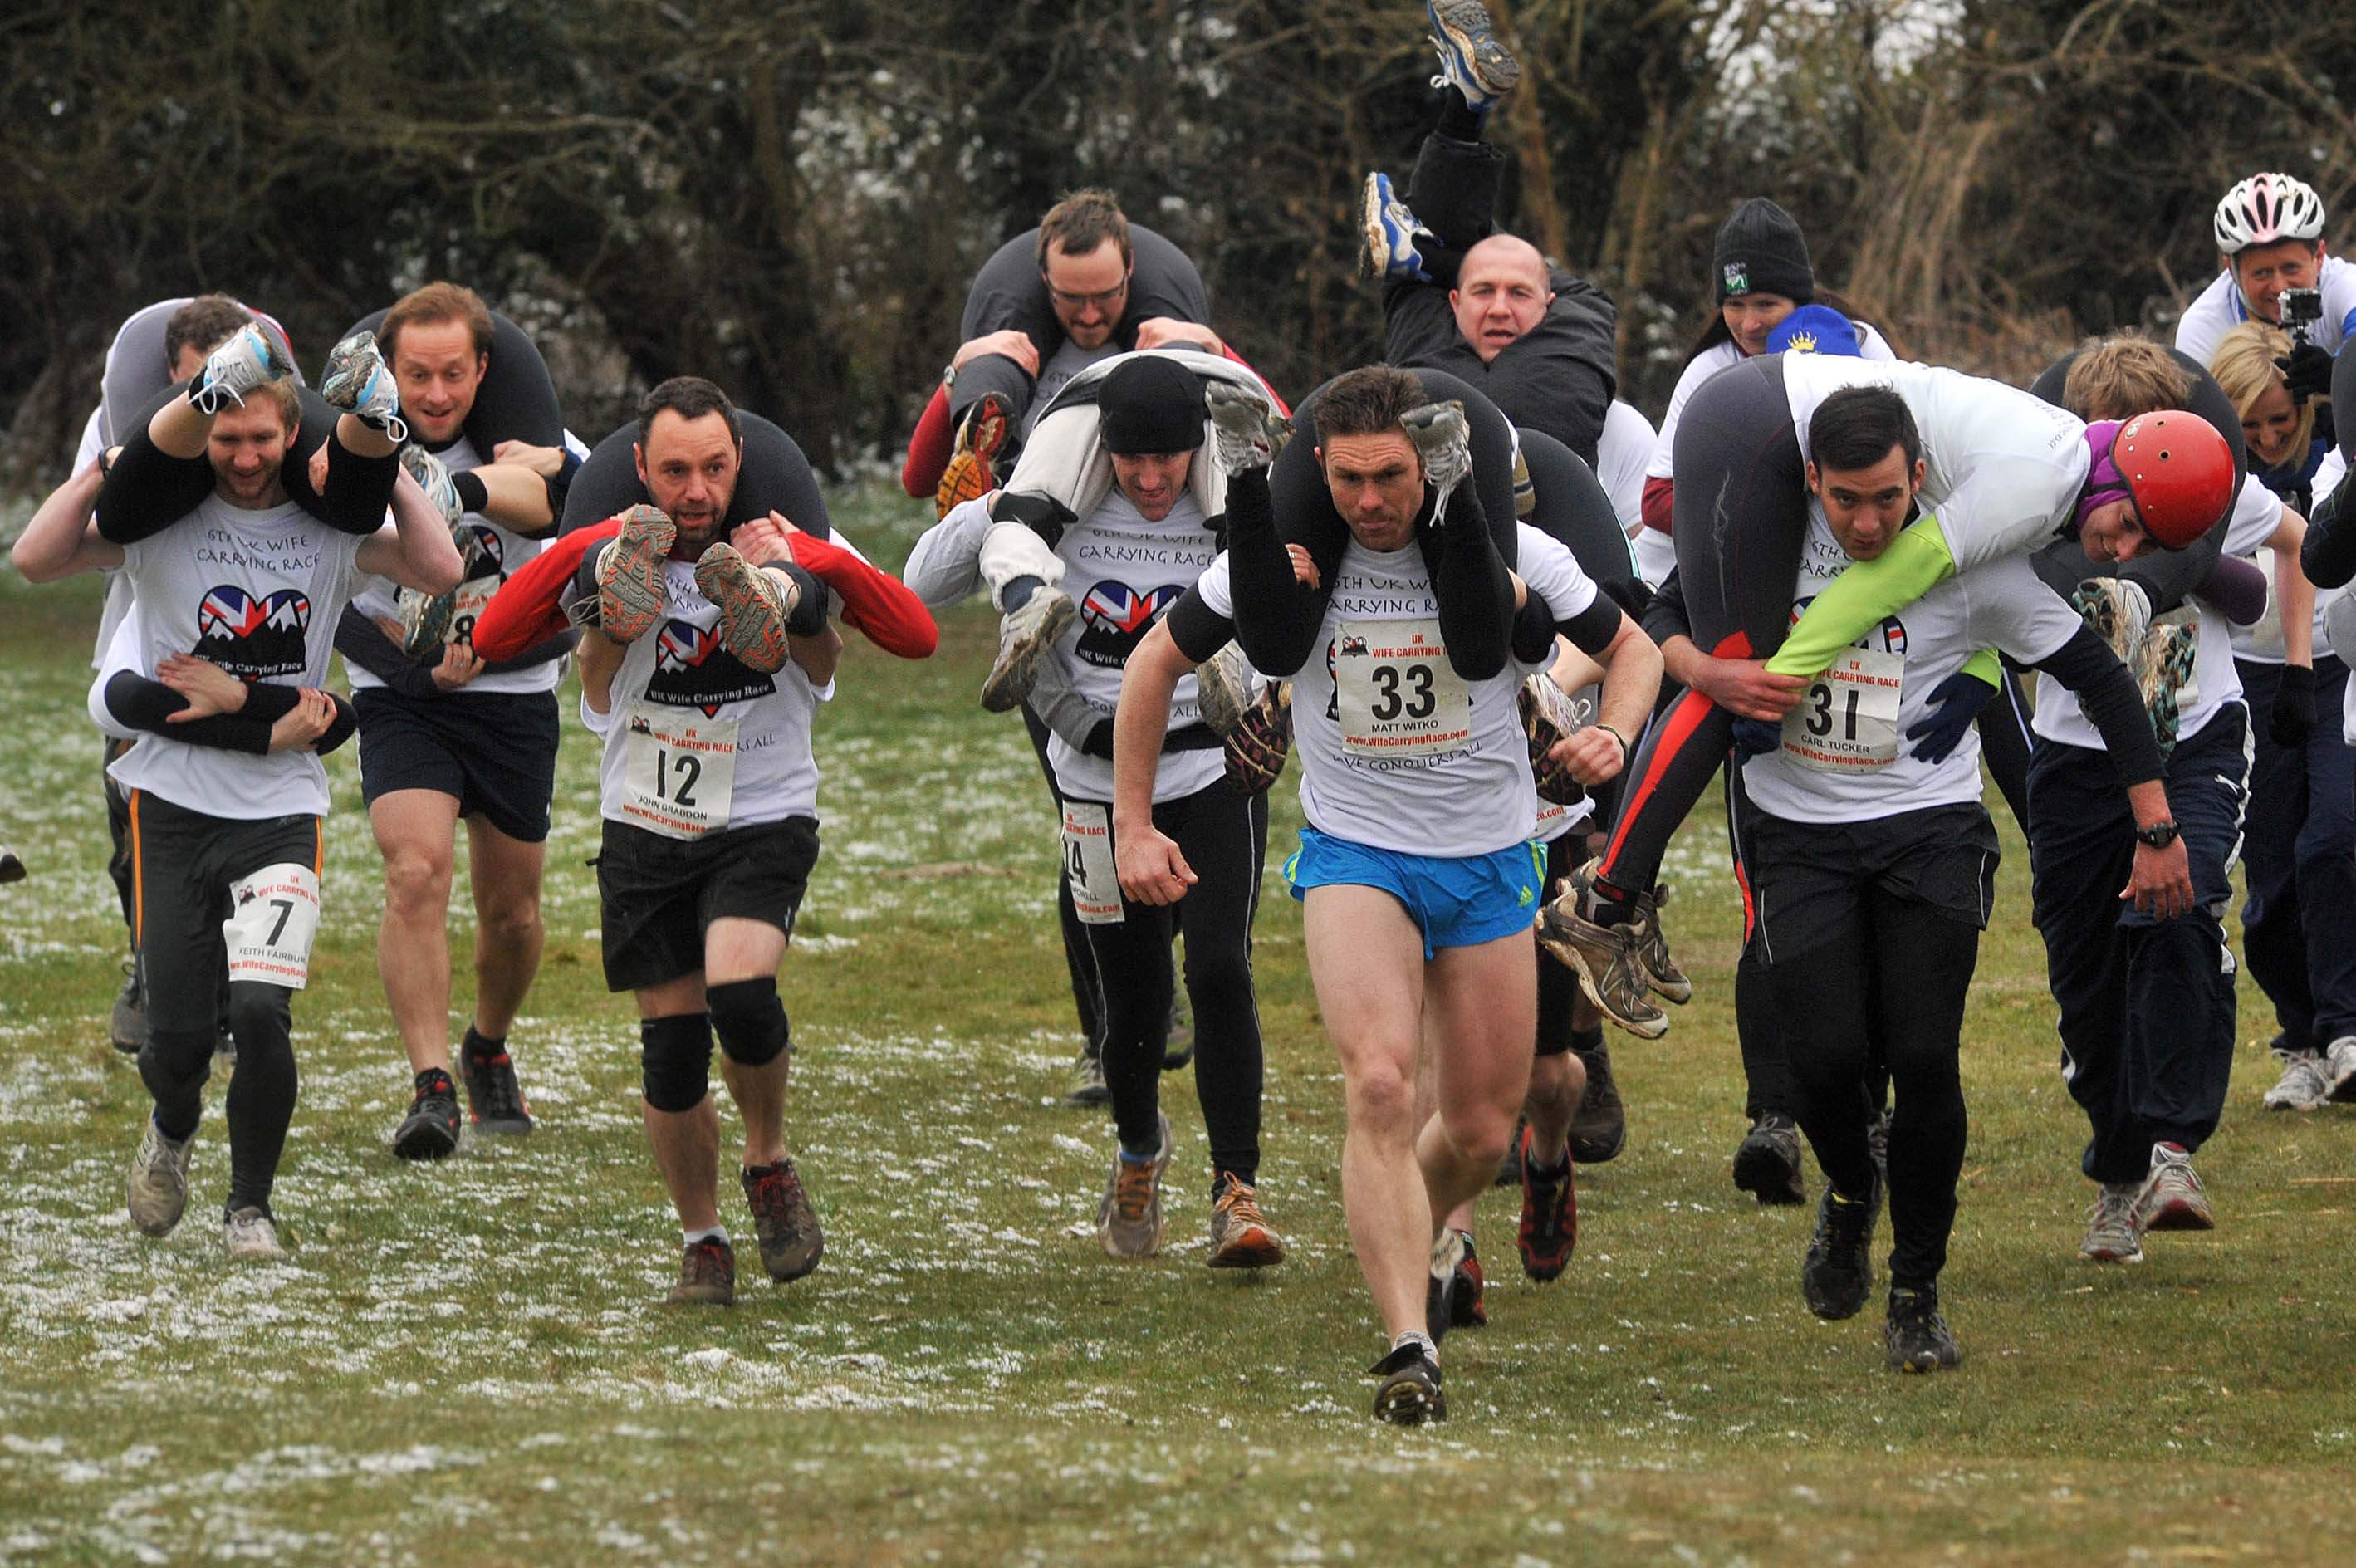 Wife Carrying game